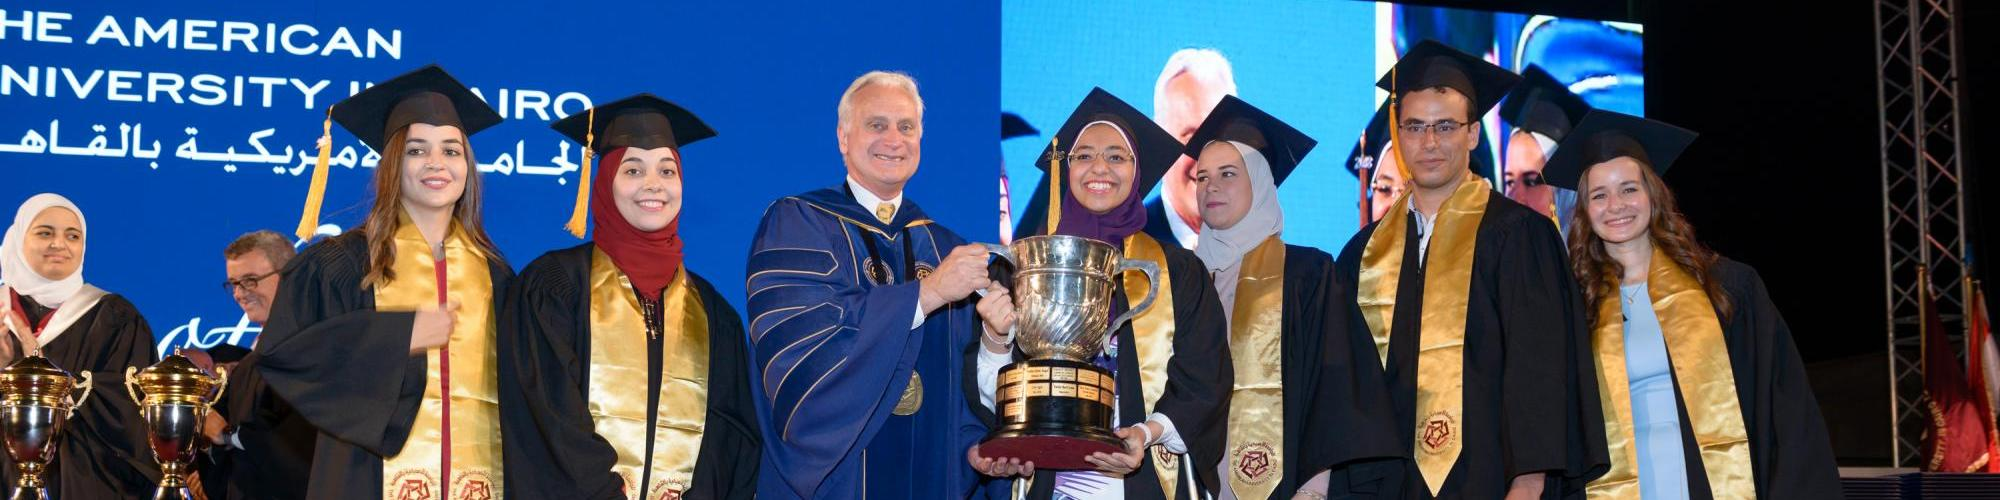 Salma Mostafa Farrag, Nadine Ahmed Wahdan, Yasmine Ahmed Galal, Rana Samir Ead, Badr Khaled Alkhamissi and Salma Shukry Emara receive the President's Cup for the highest grade point average of their graduating class